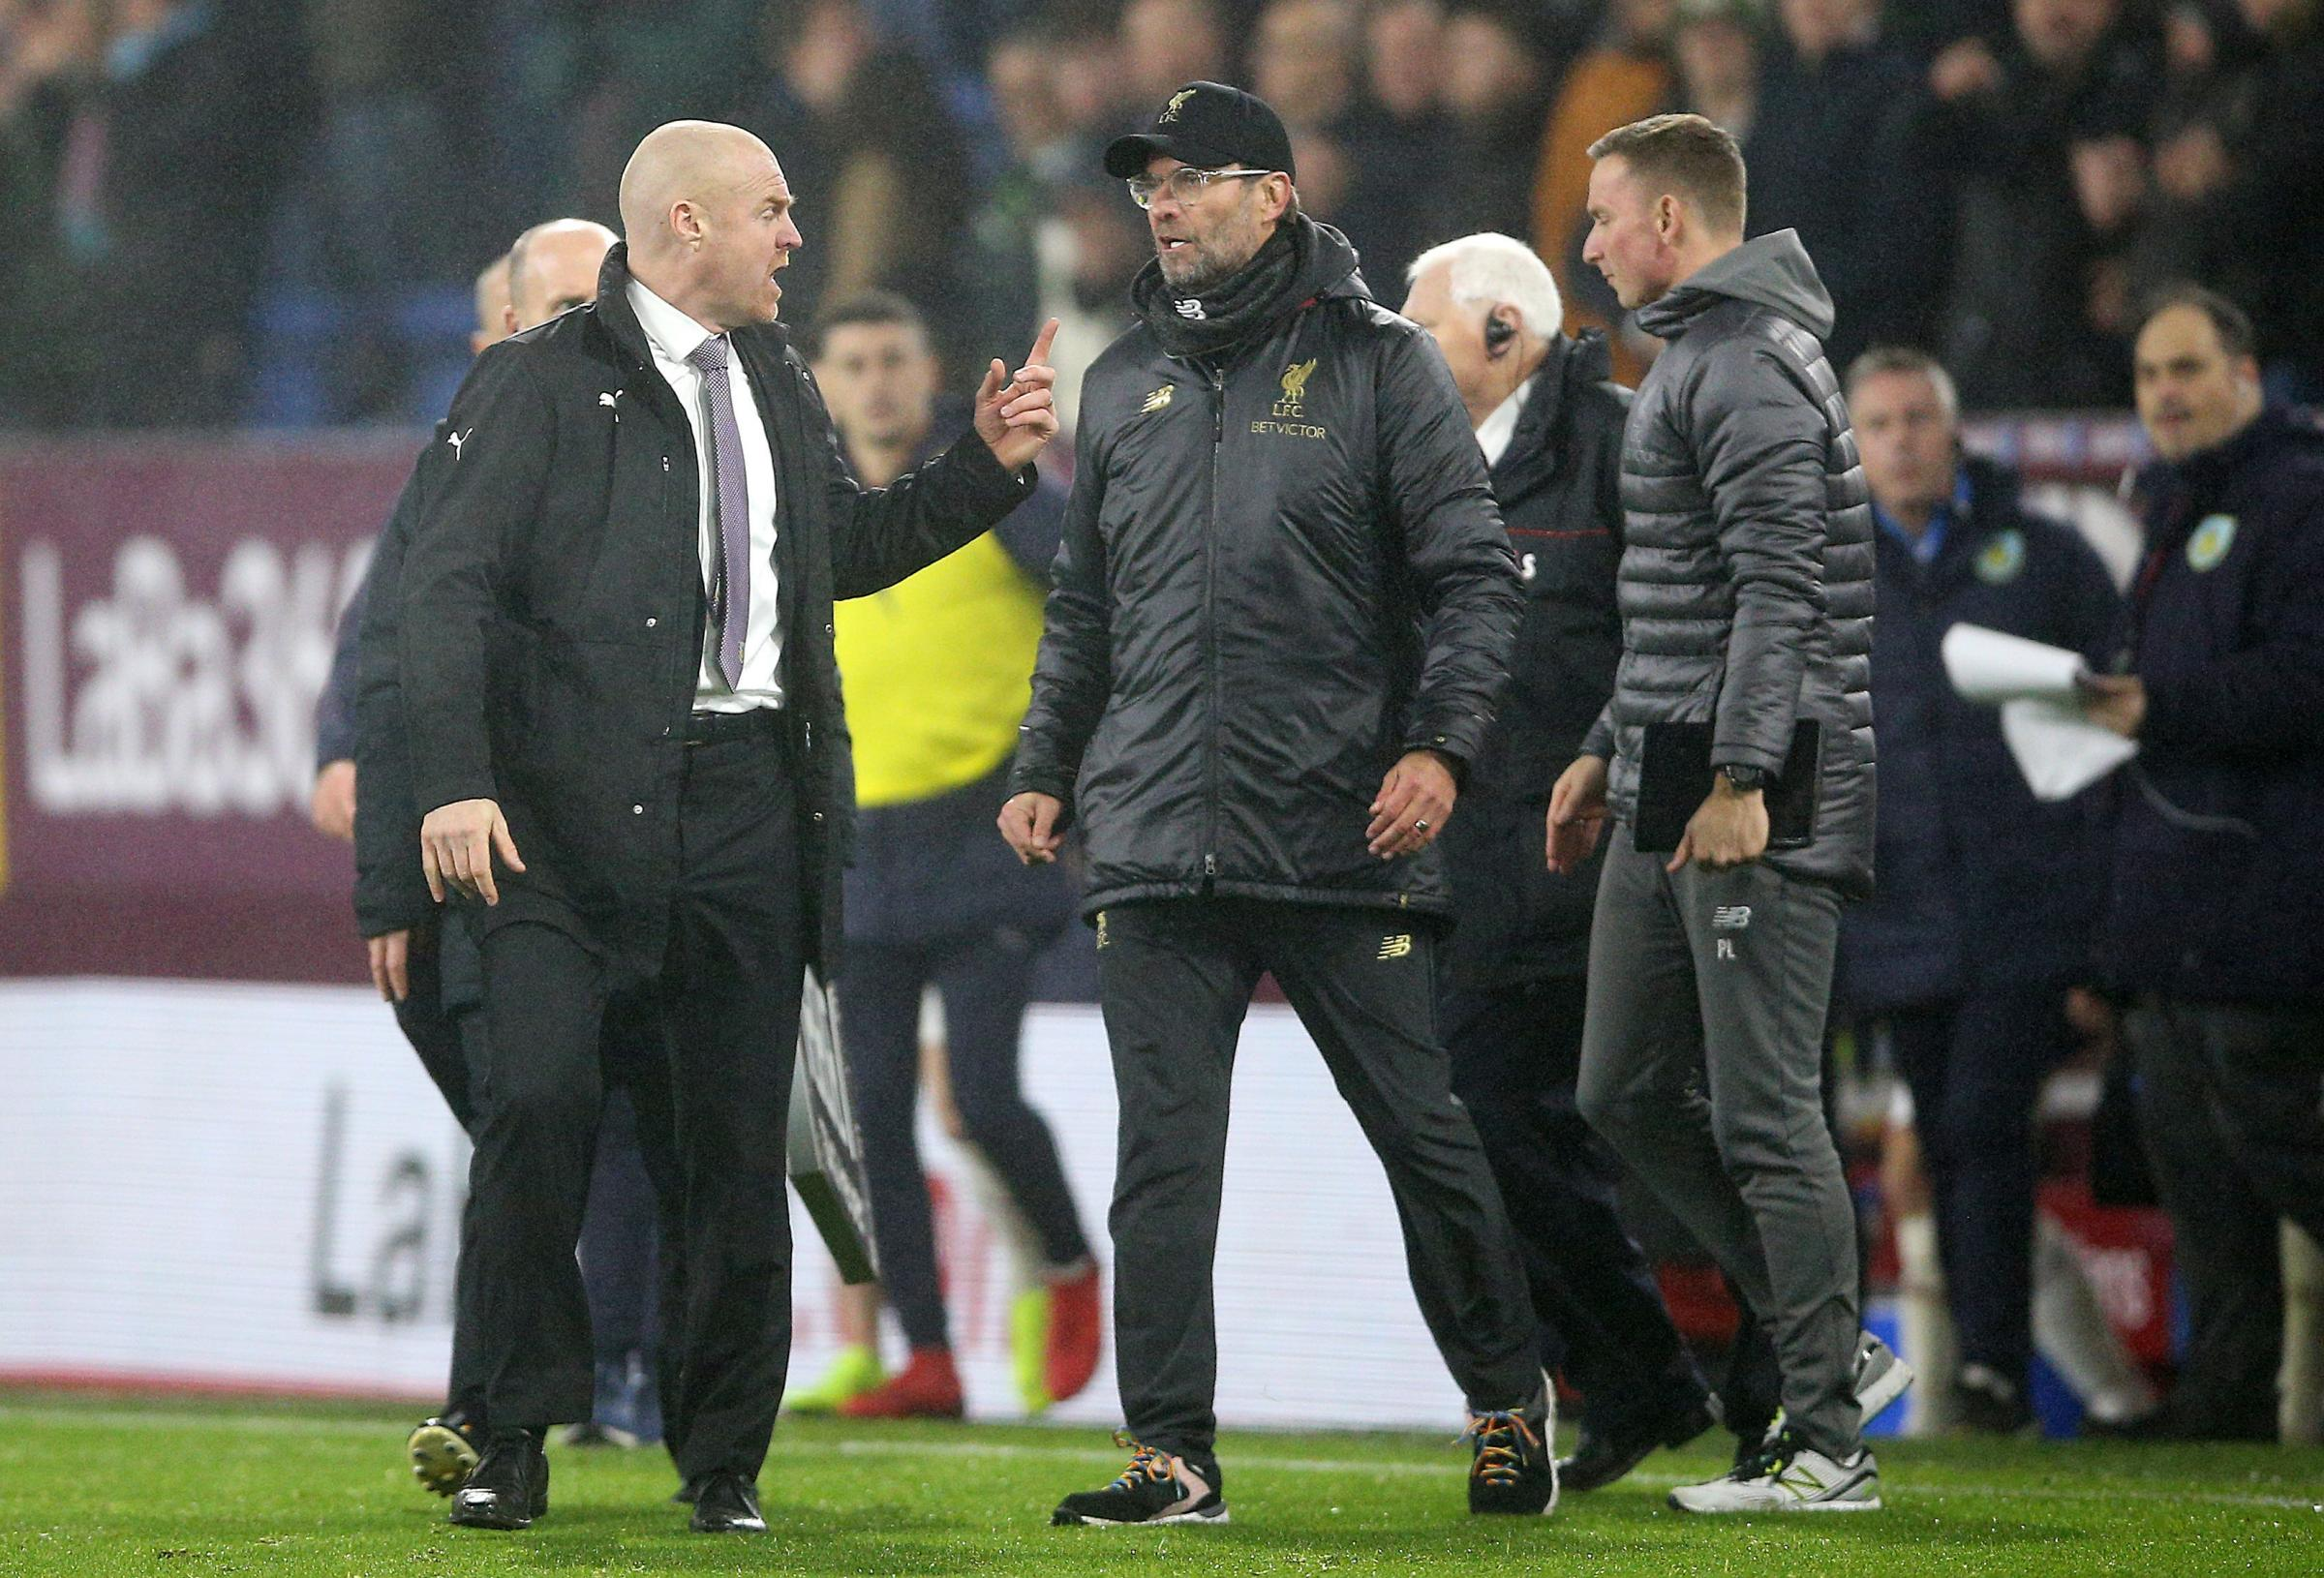 Burnley boss Dyche sets record straight over Sturridge comments